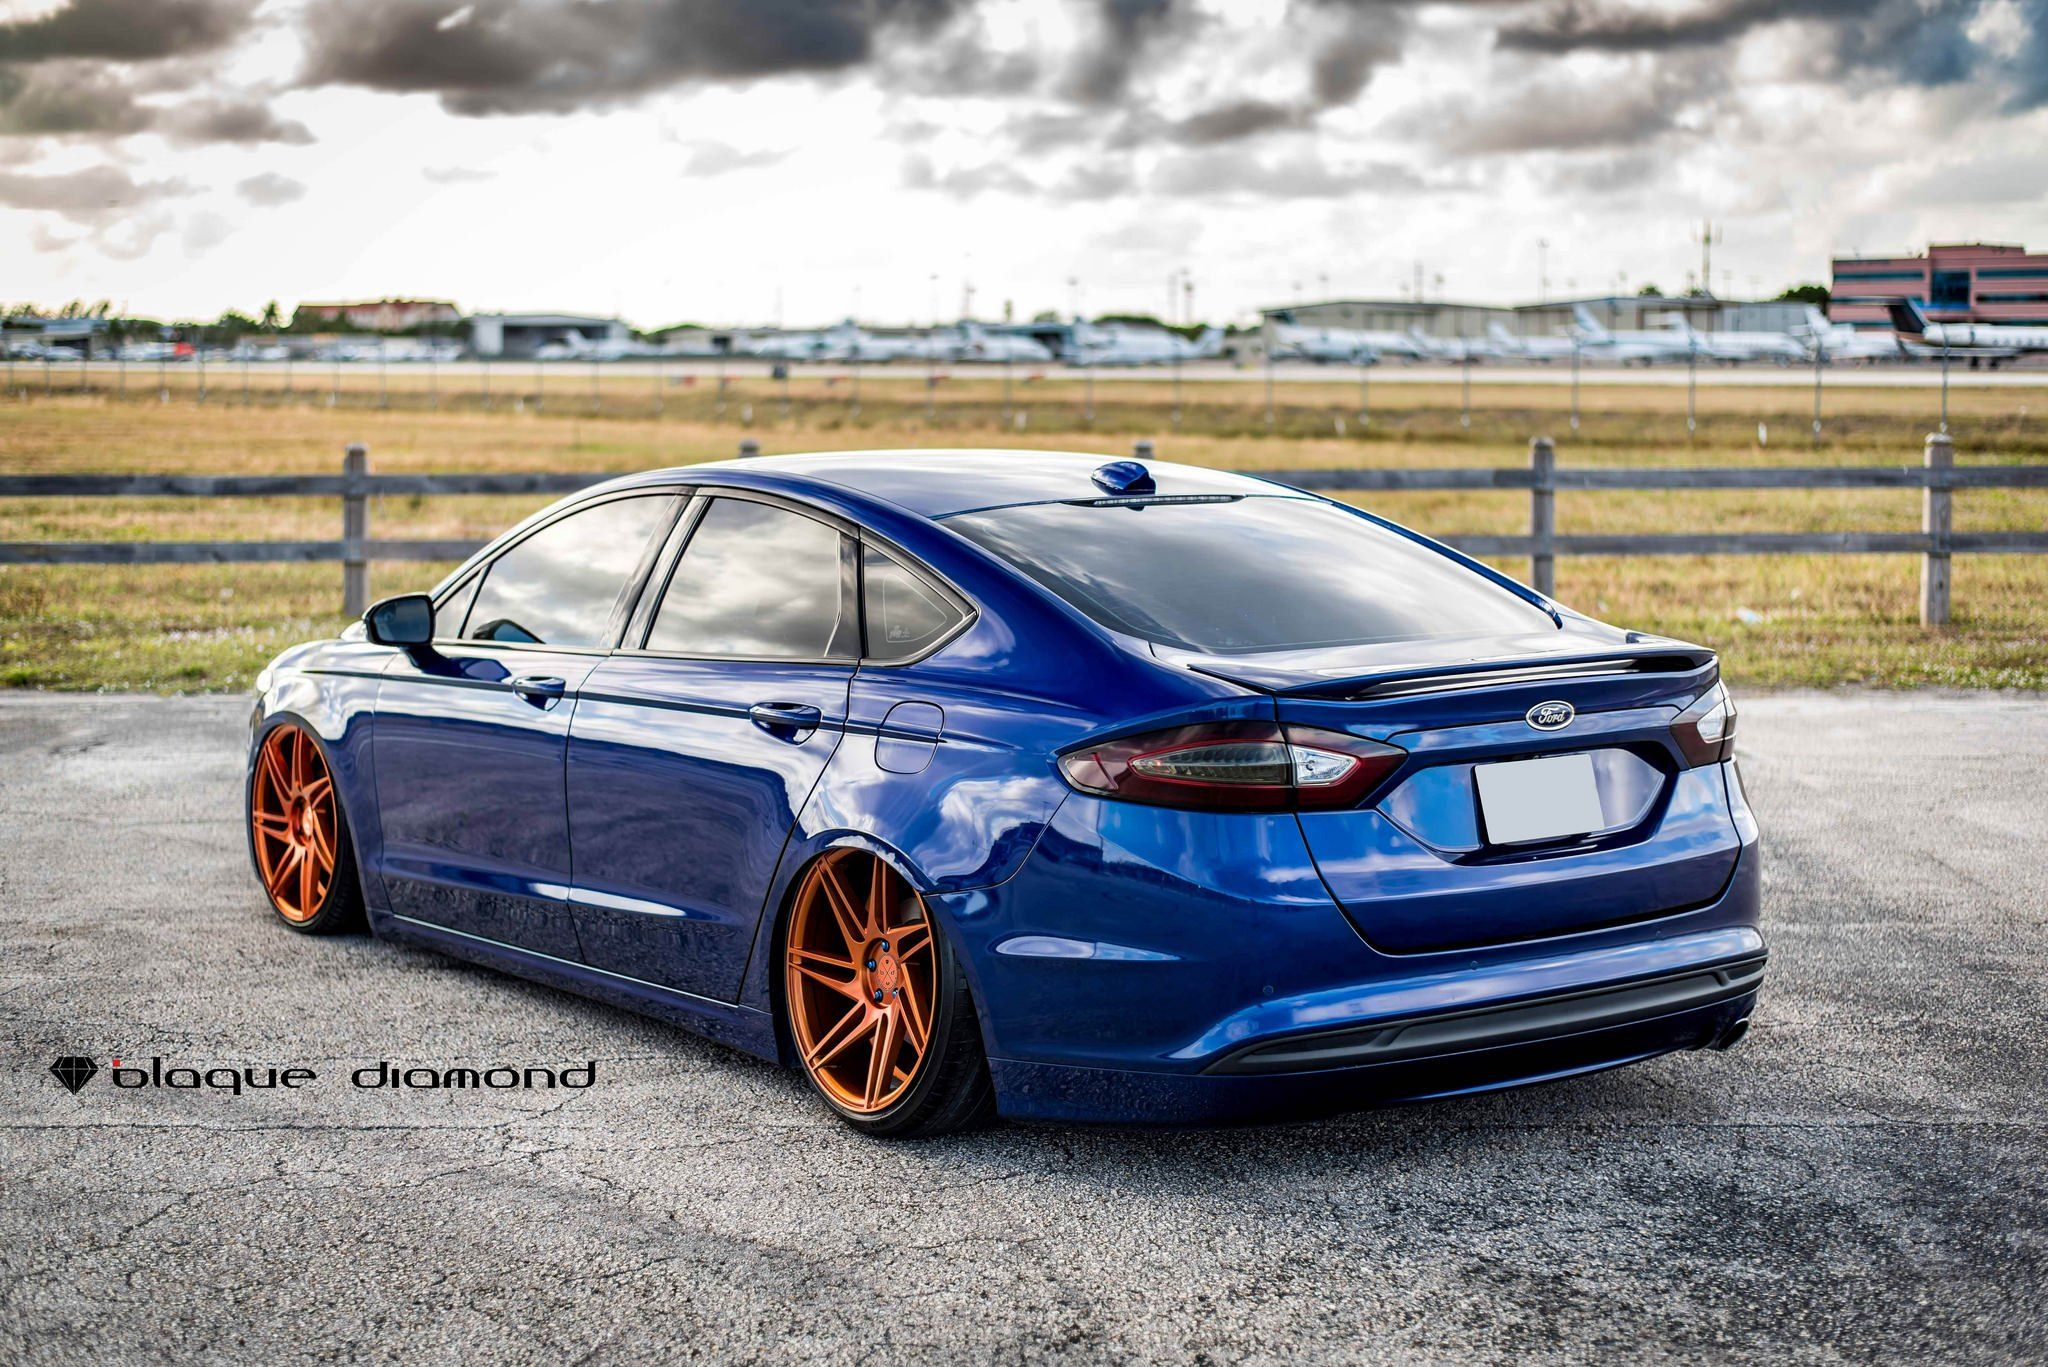 Slammed Ford Fusion On Insane Rims By Black Diamond Ford Fusion